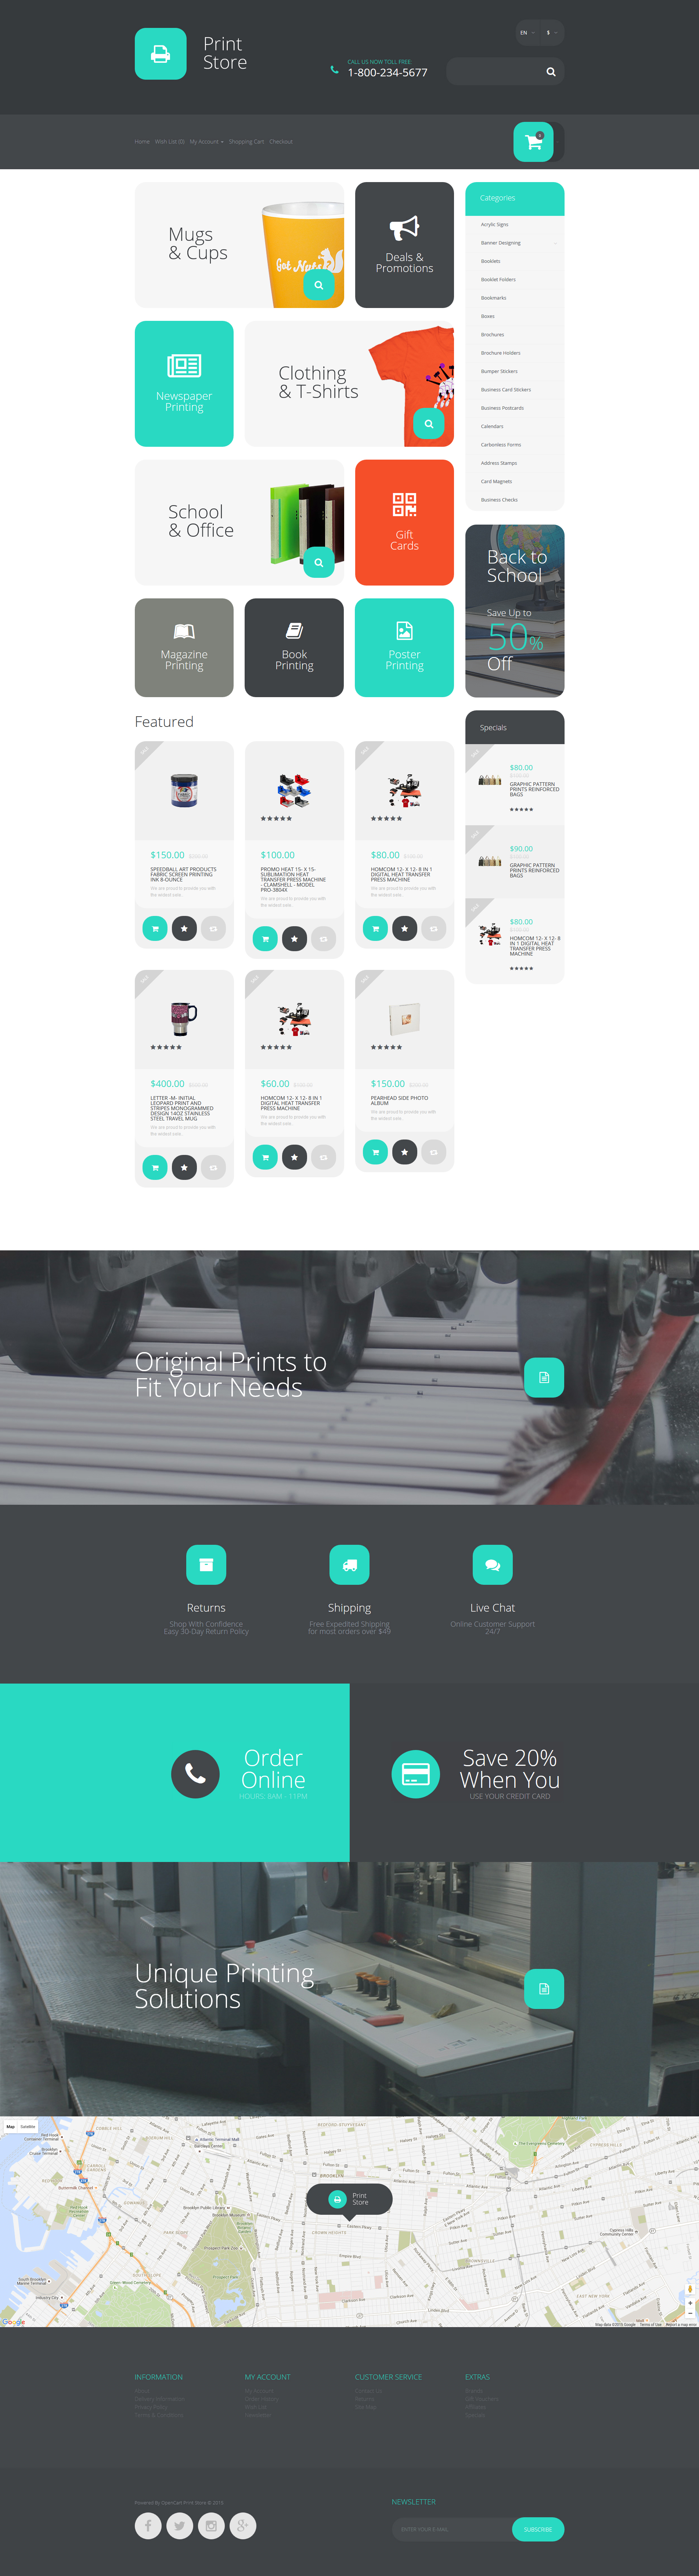 Printing Services OpenCart Template